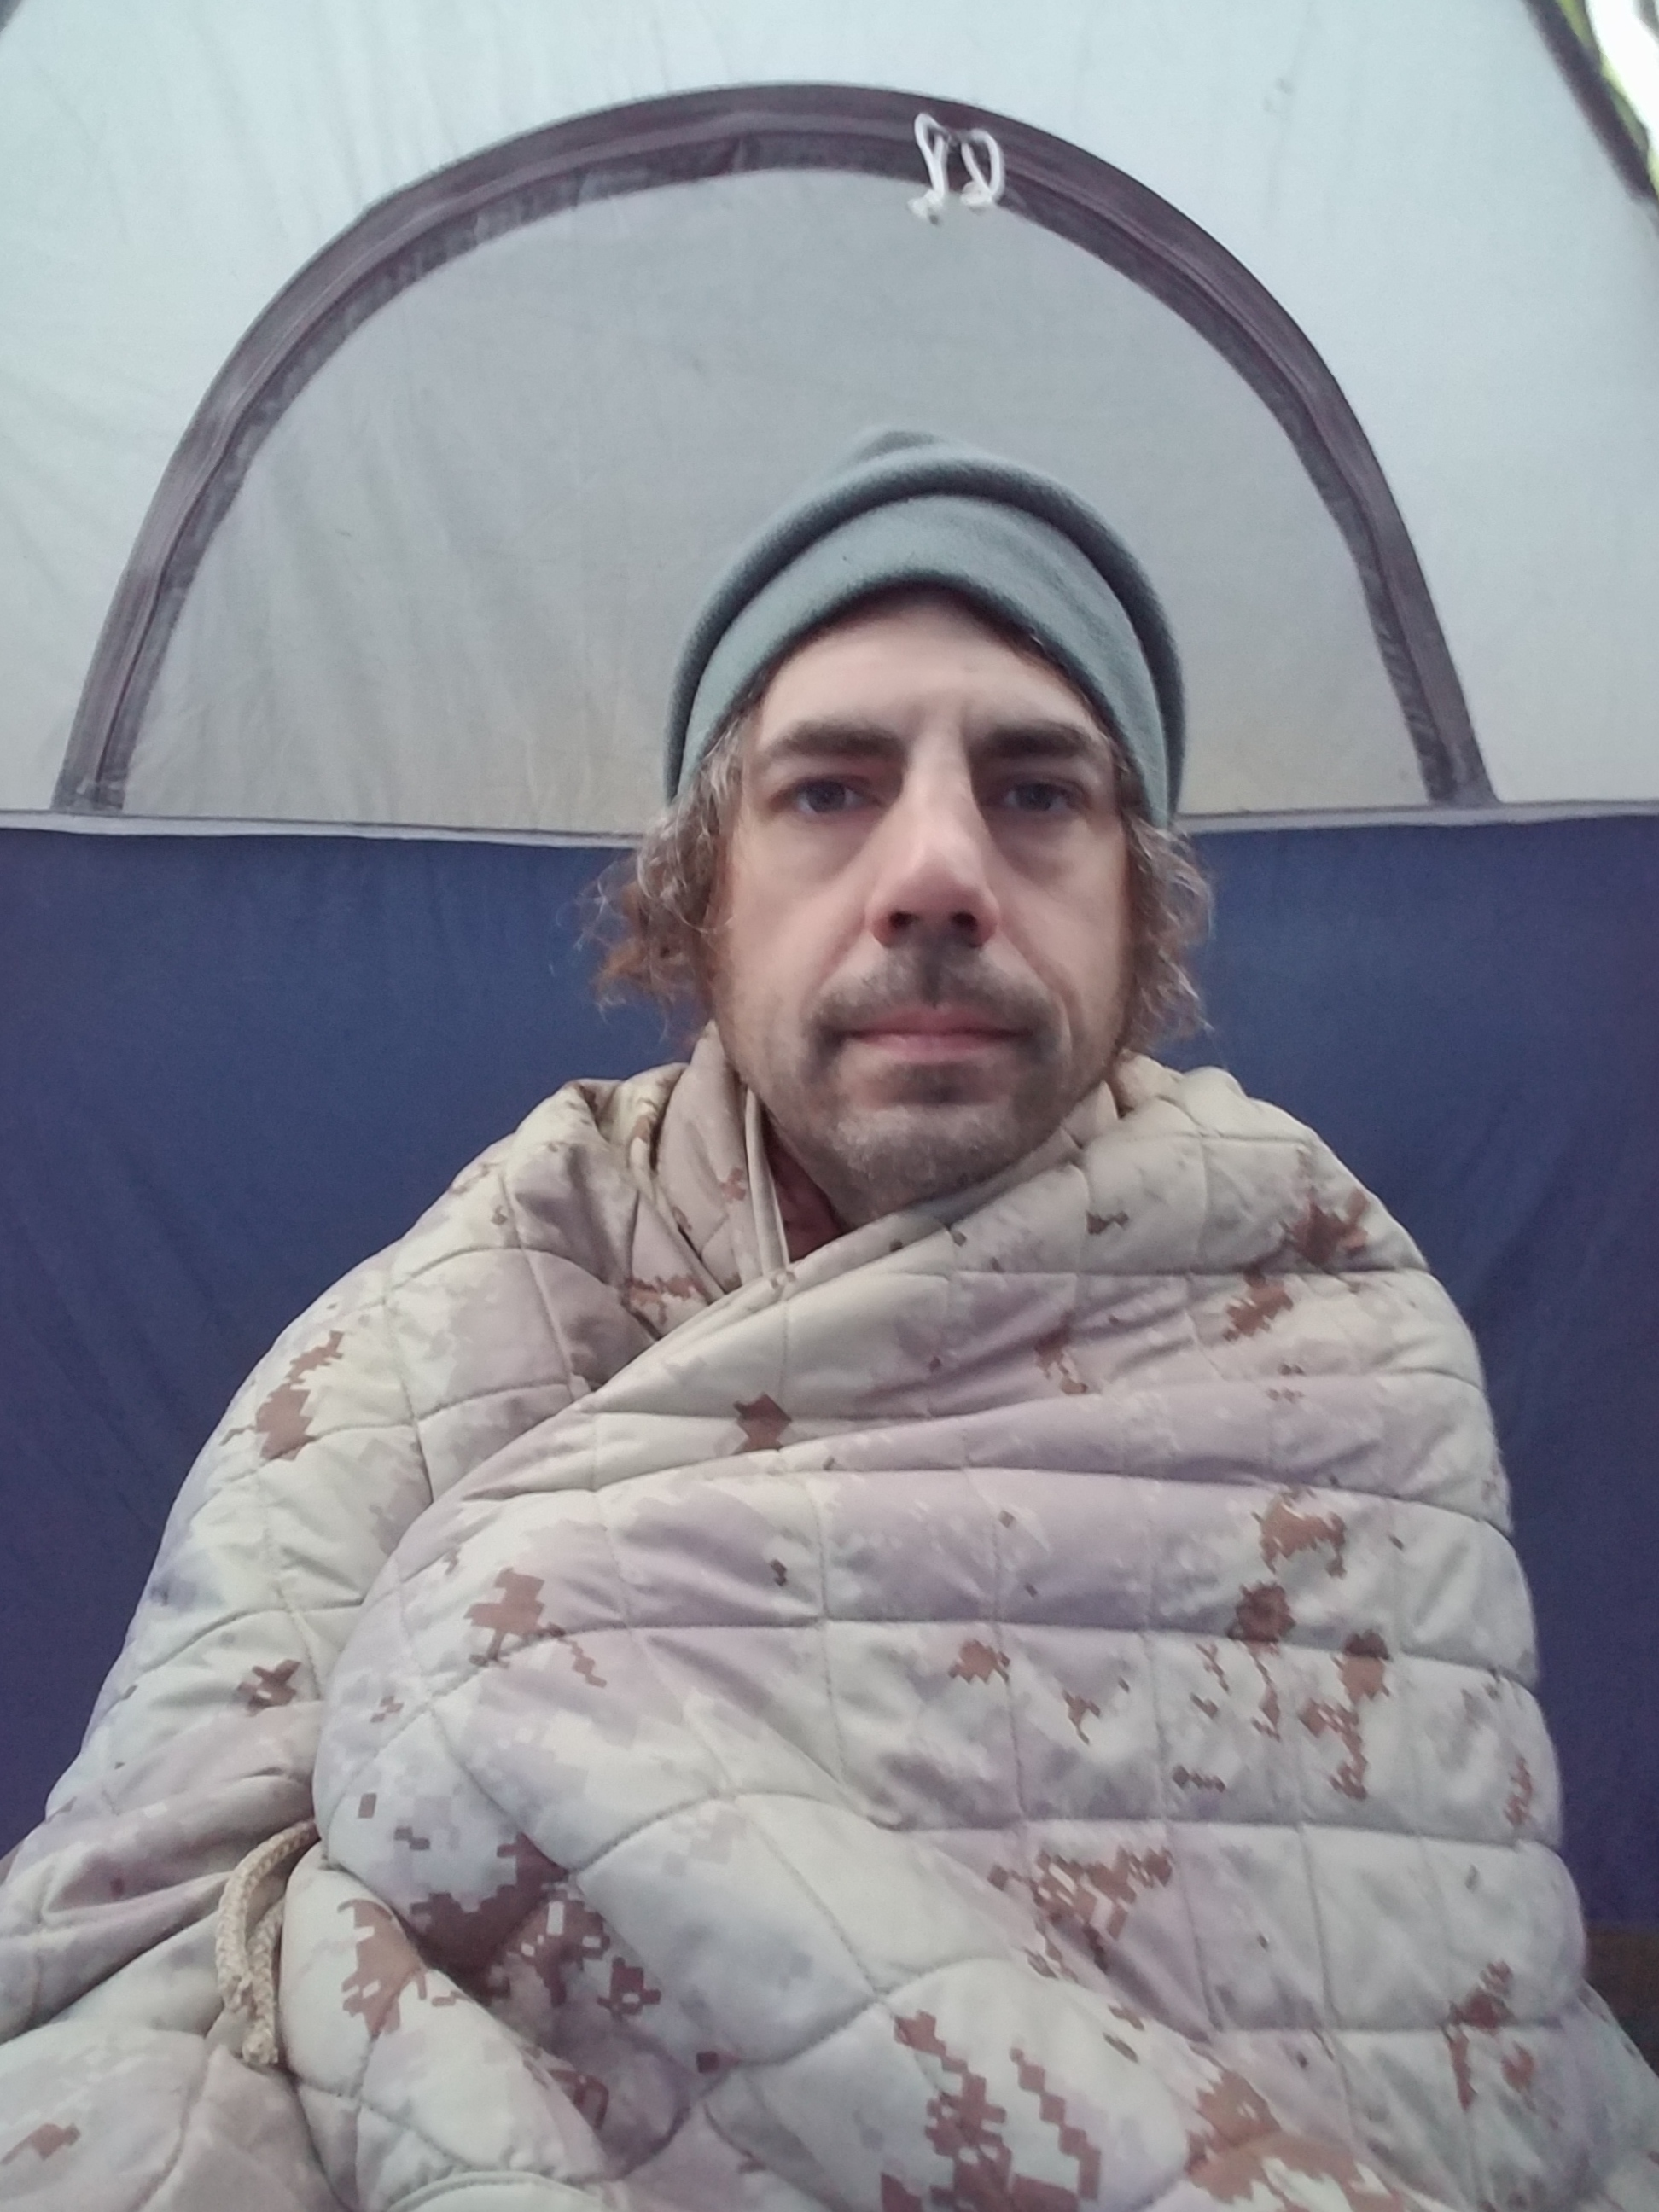 So Cold - according to the interwebs I look like Dax Shepard.